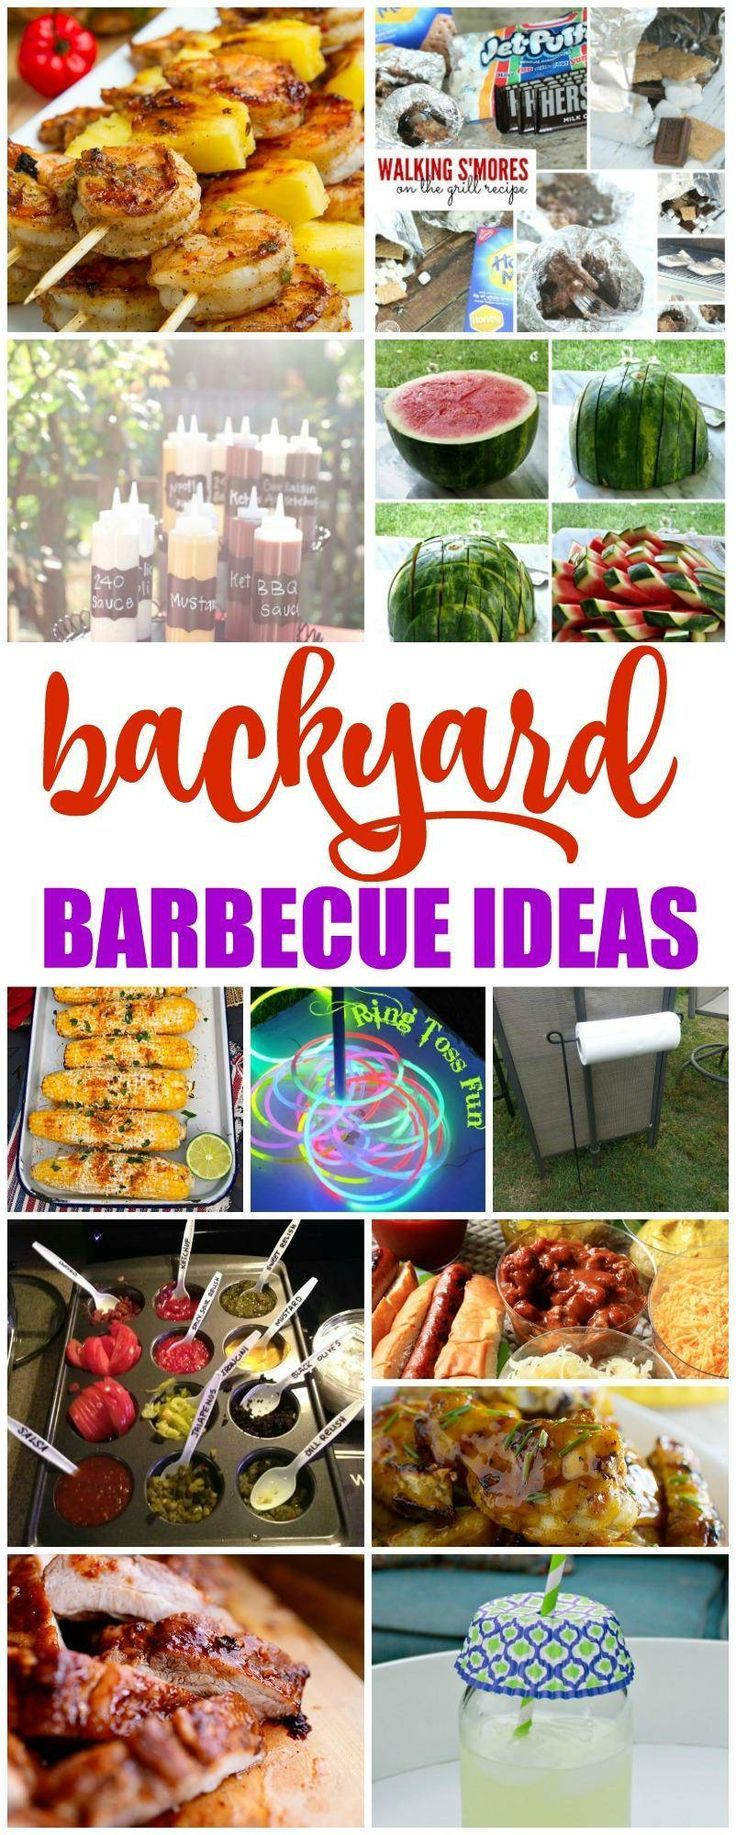 Backyard BBQ Recipes! A FUN way to celebrate Summer